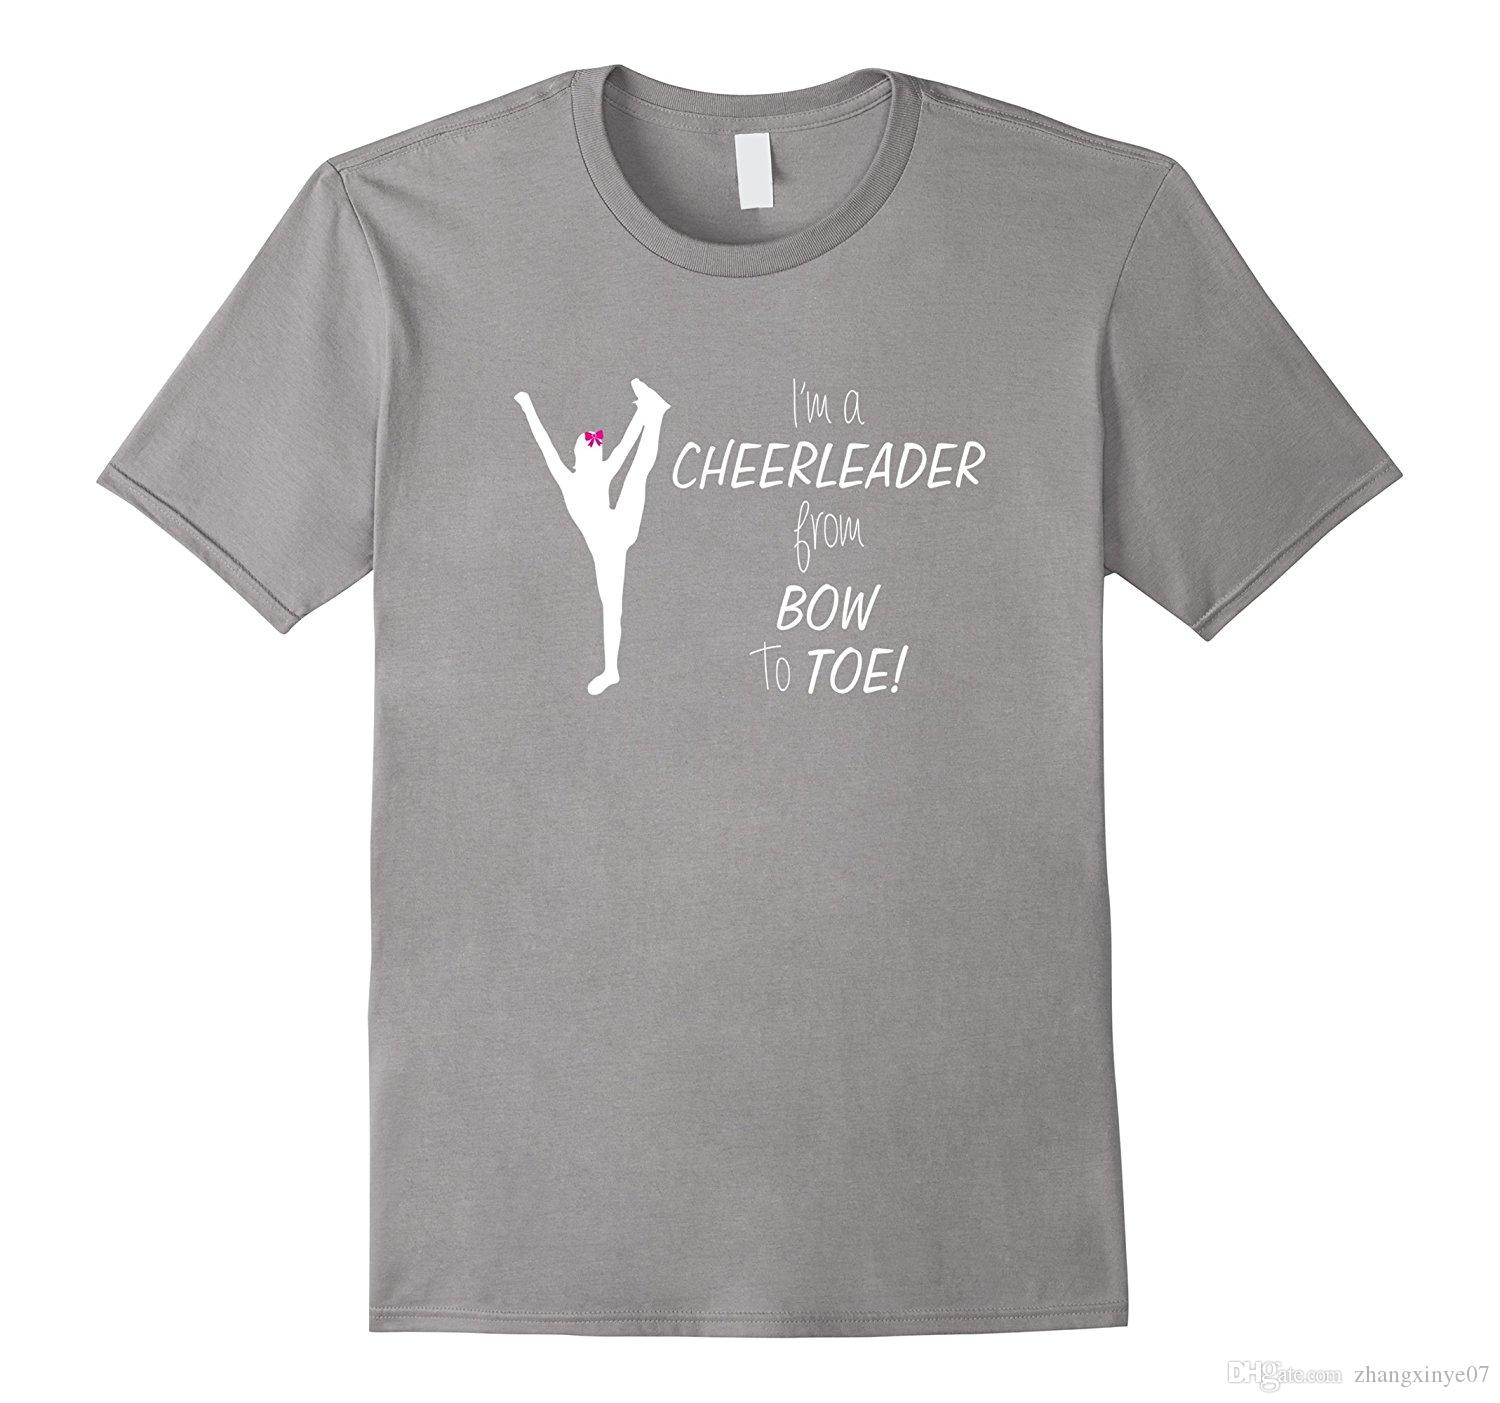 Cheer T Shirt Designs | Cheerleader T Shirt Bow To Toe White Letter Cheer Tee Long Sleeve